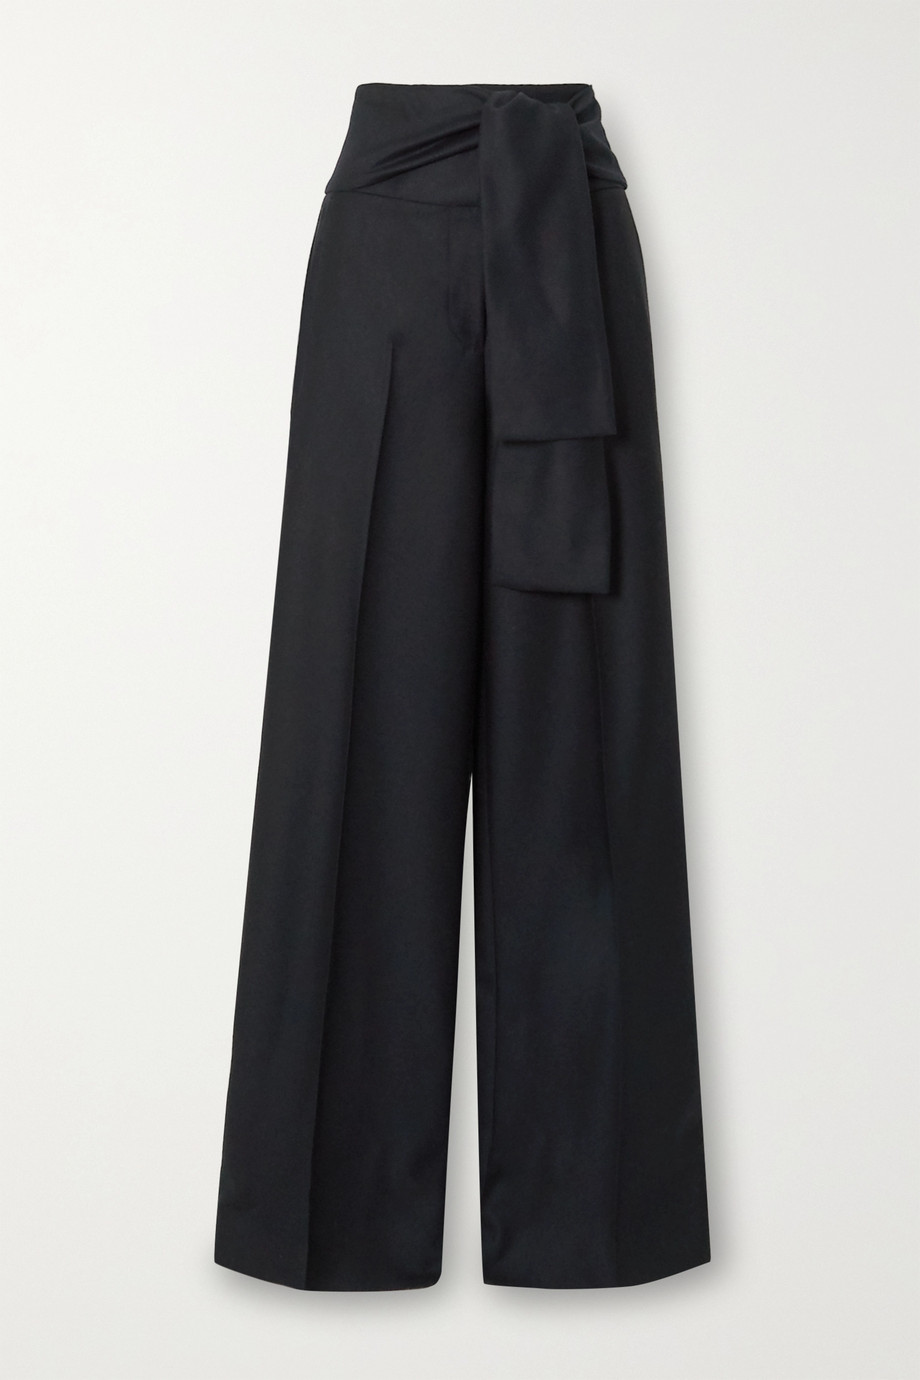 Victoria, Victoria Beckham Belted pleated wool-twill wide-leg pants